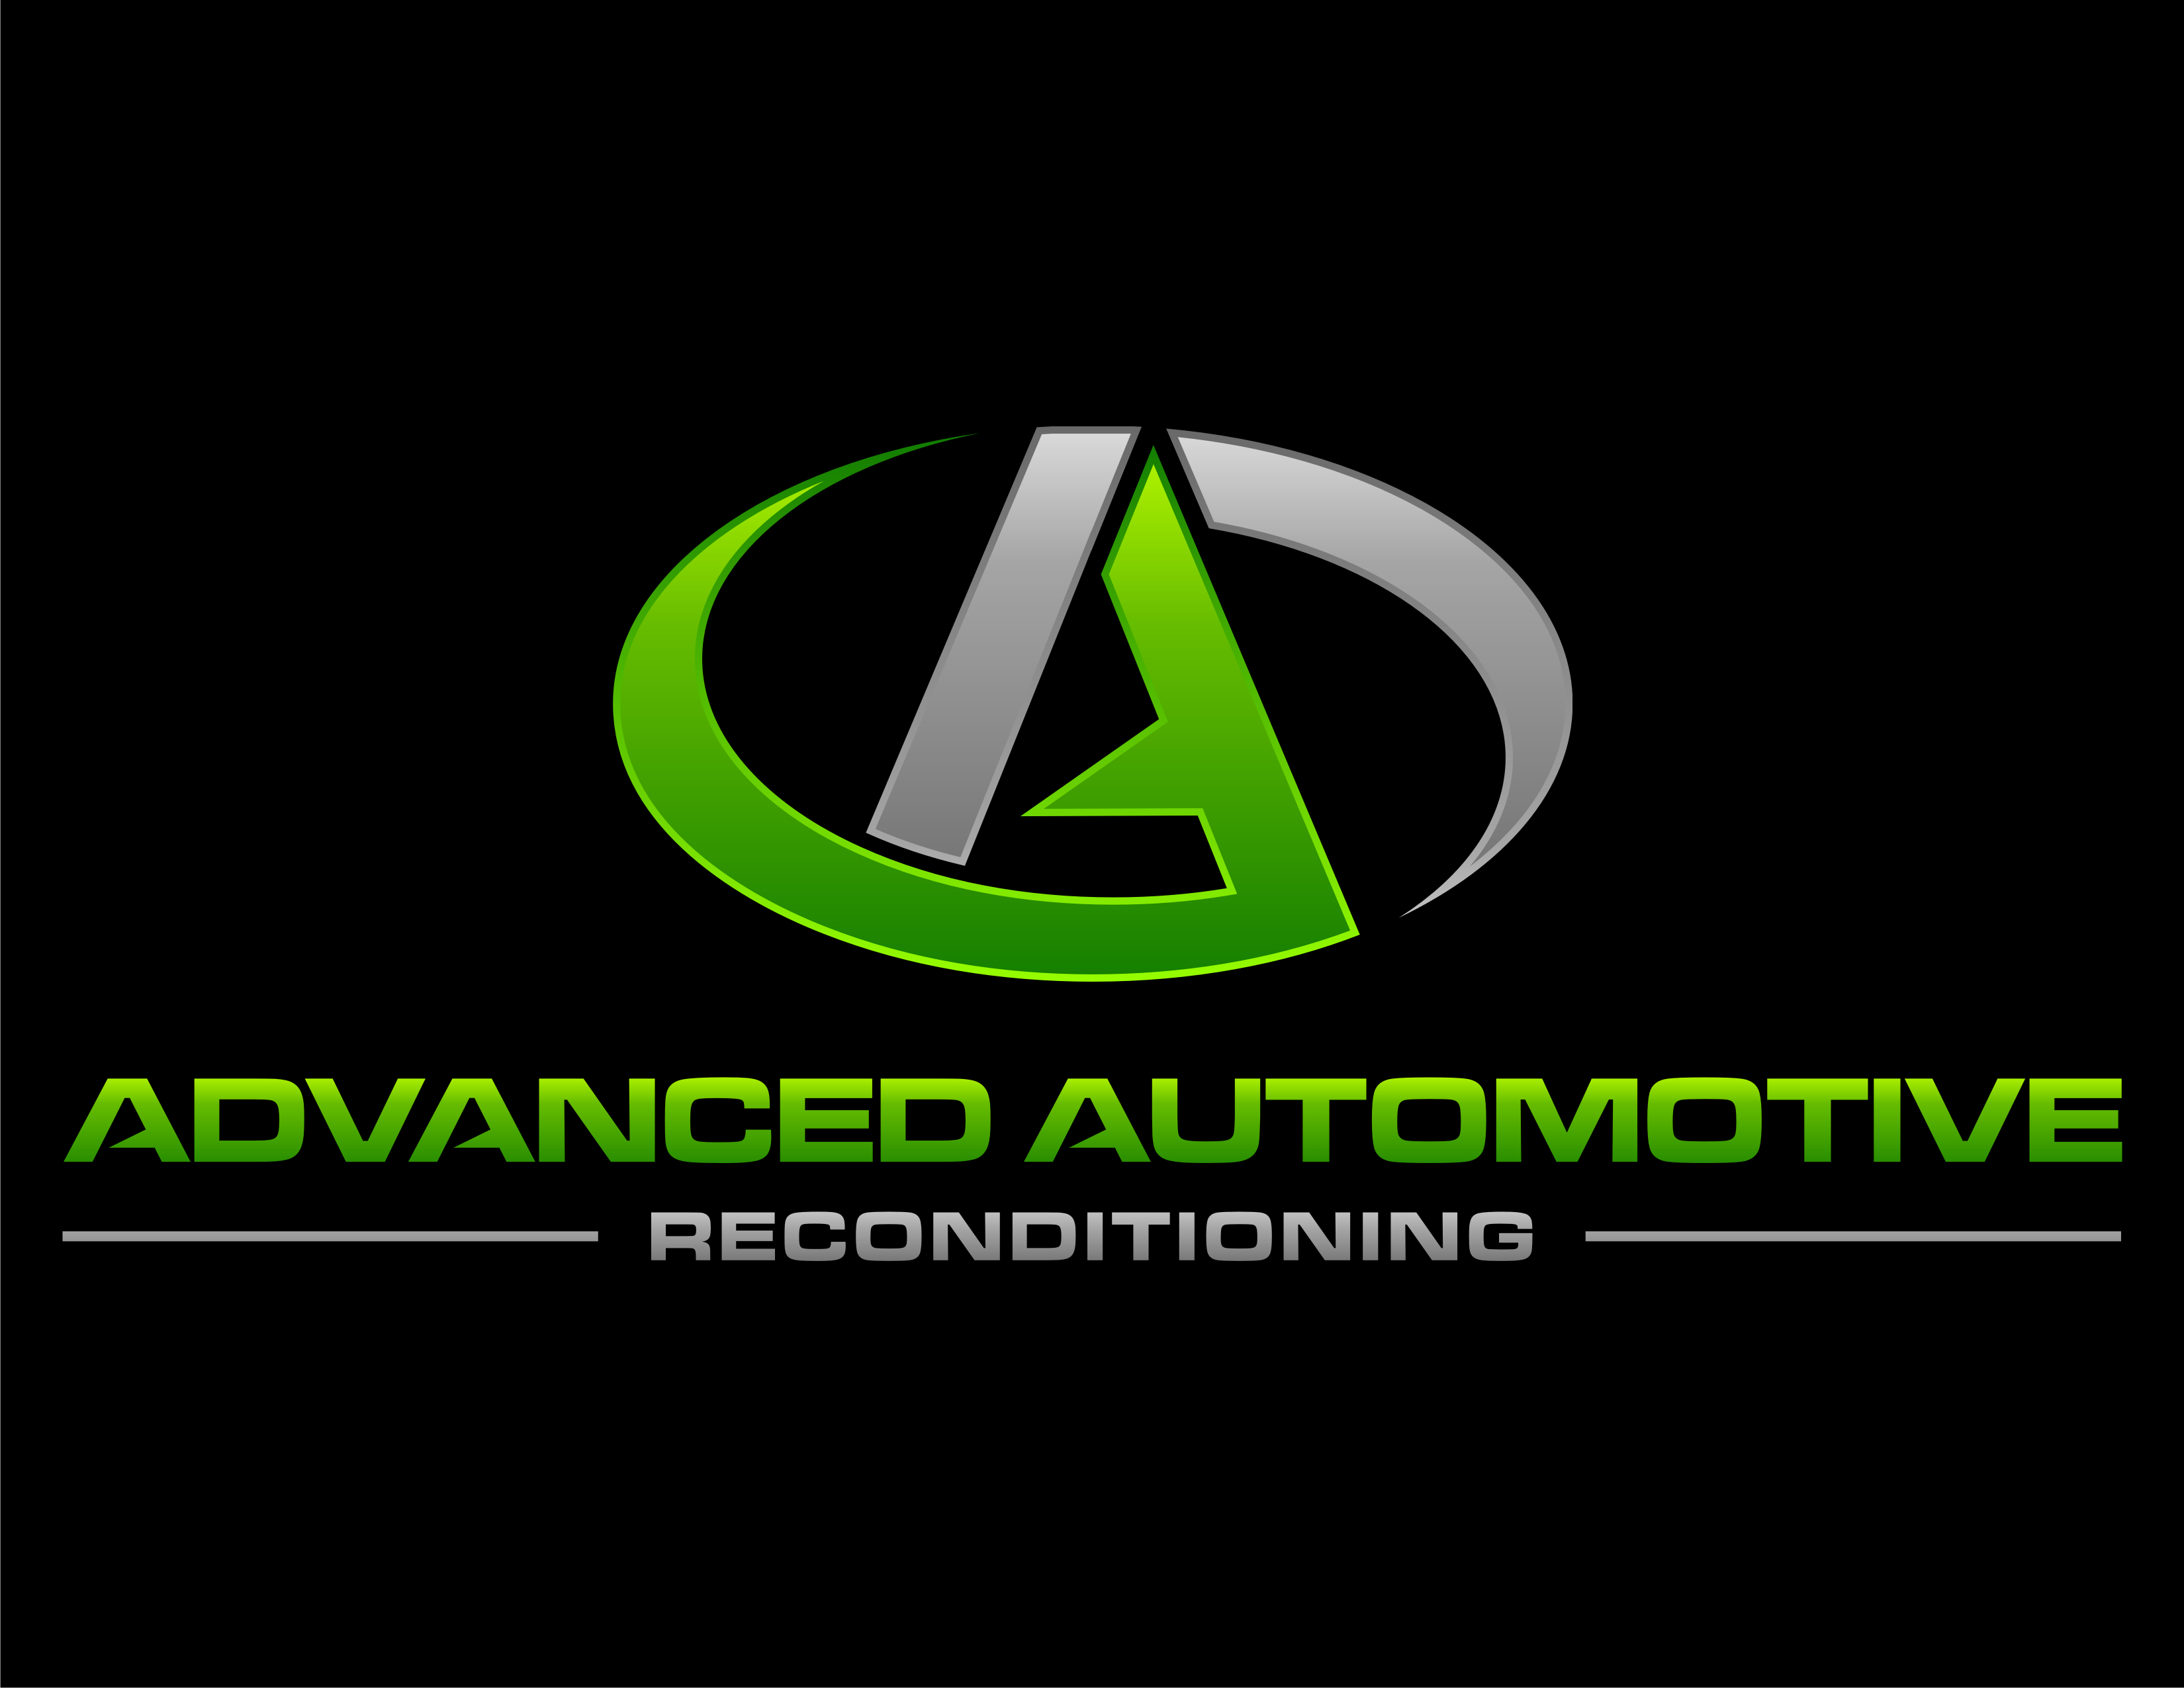 Advanced Automotive Reconditioning needs a an awesome modern logo